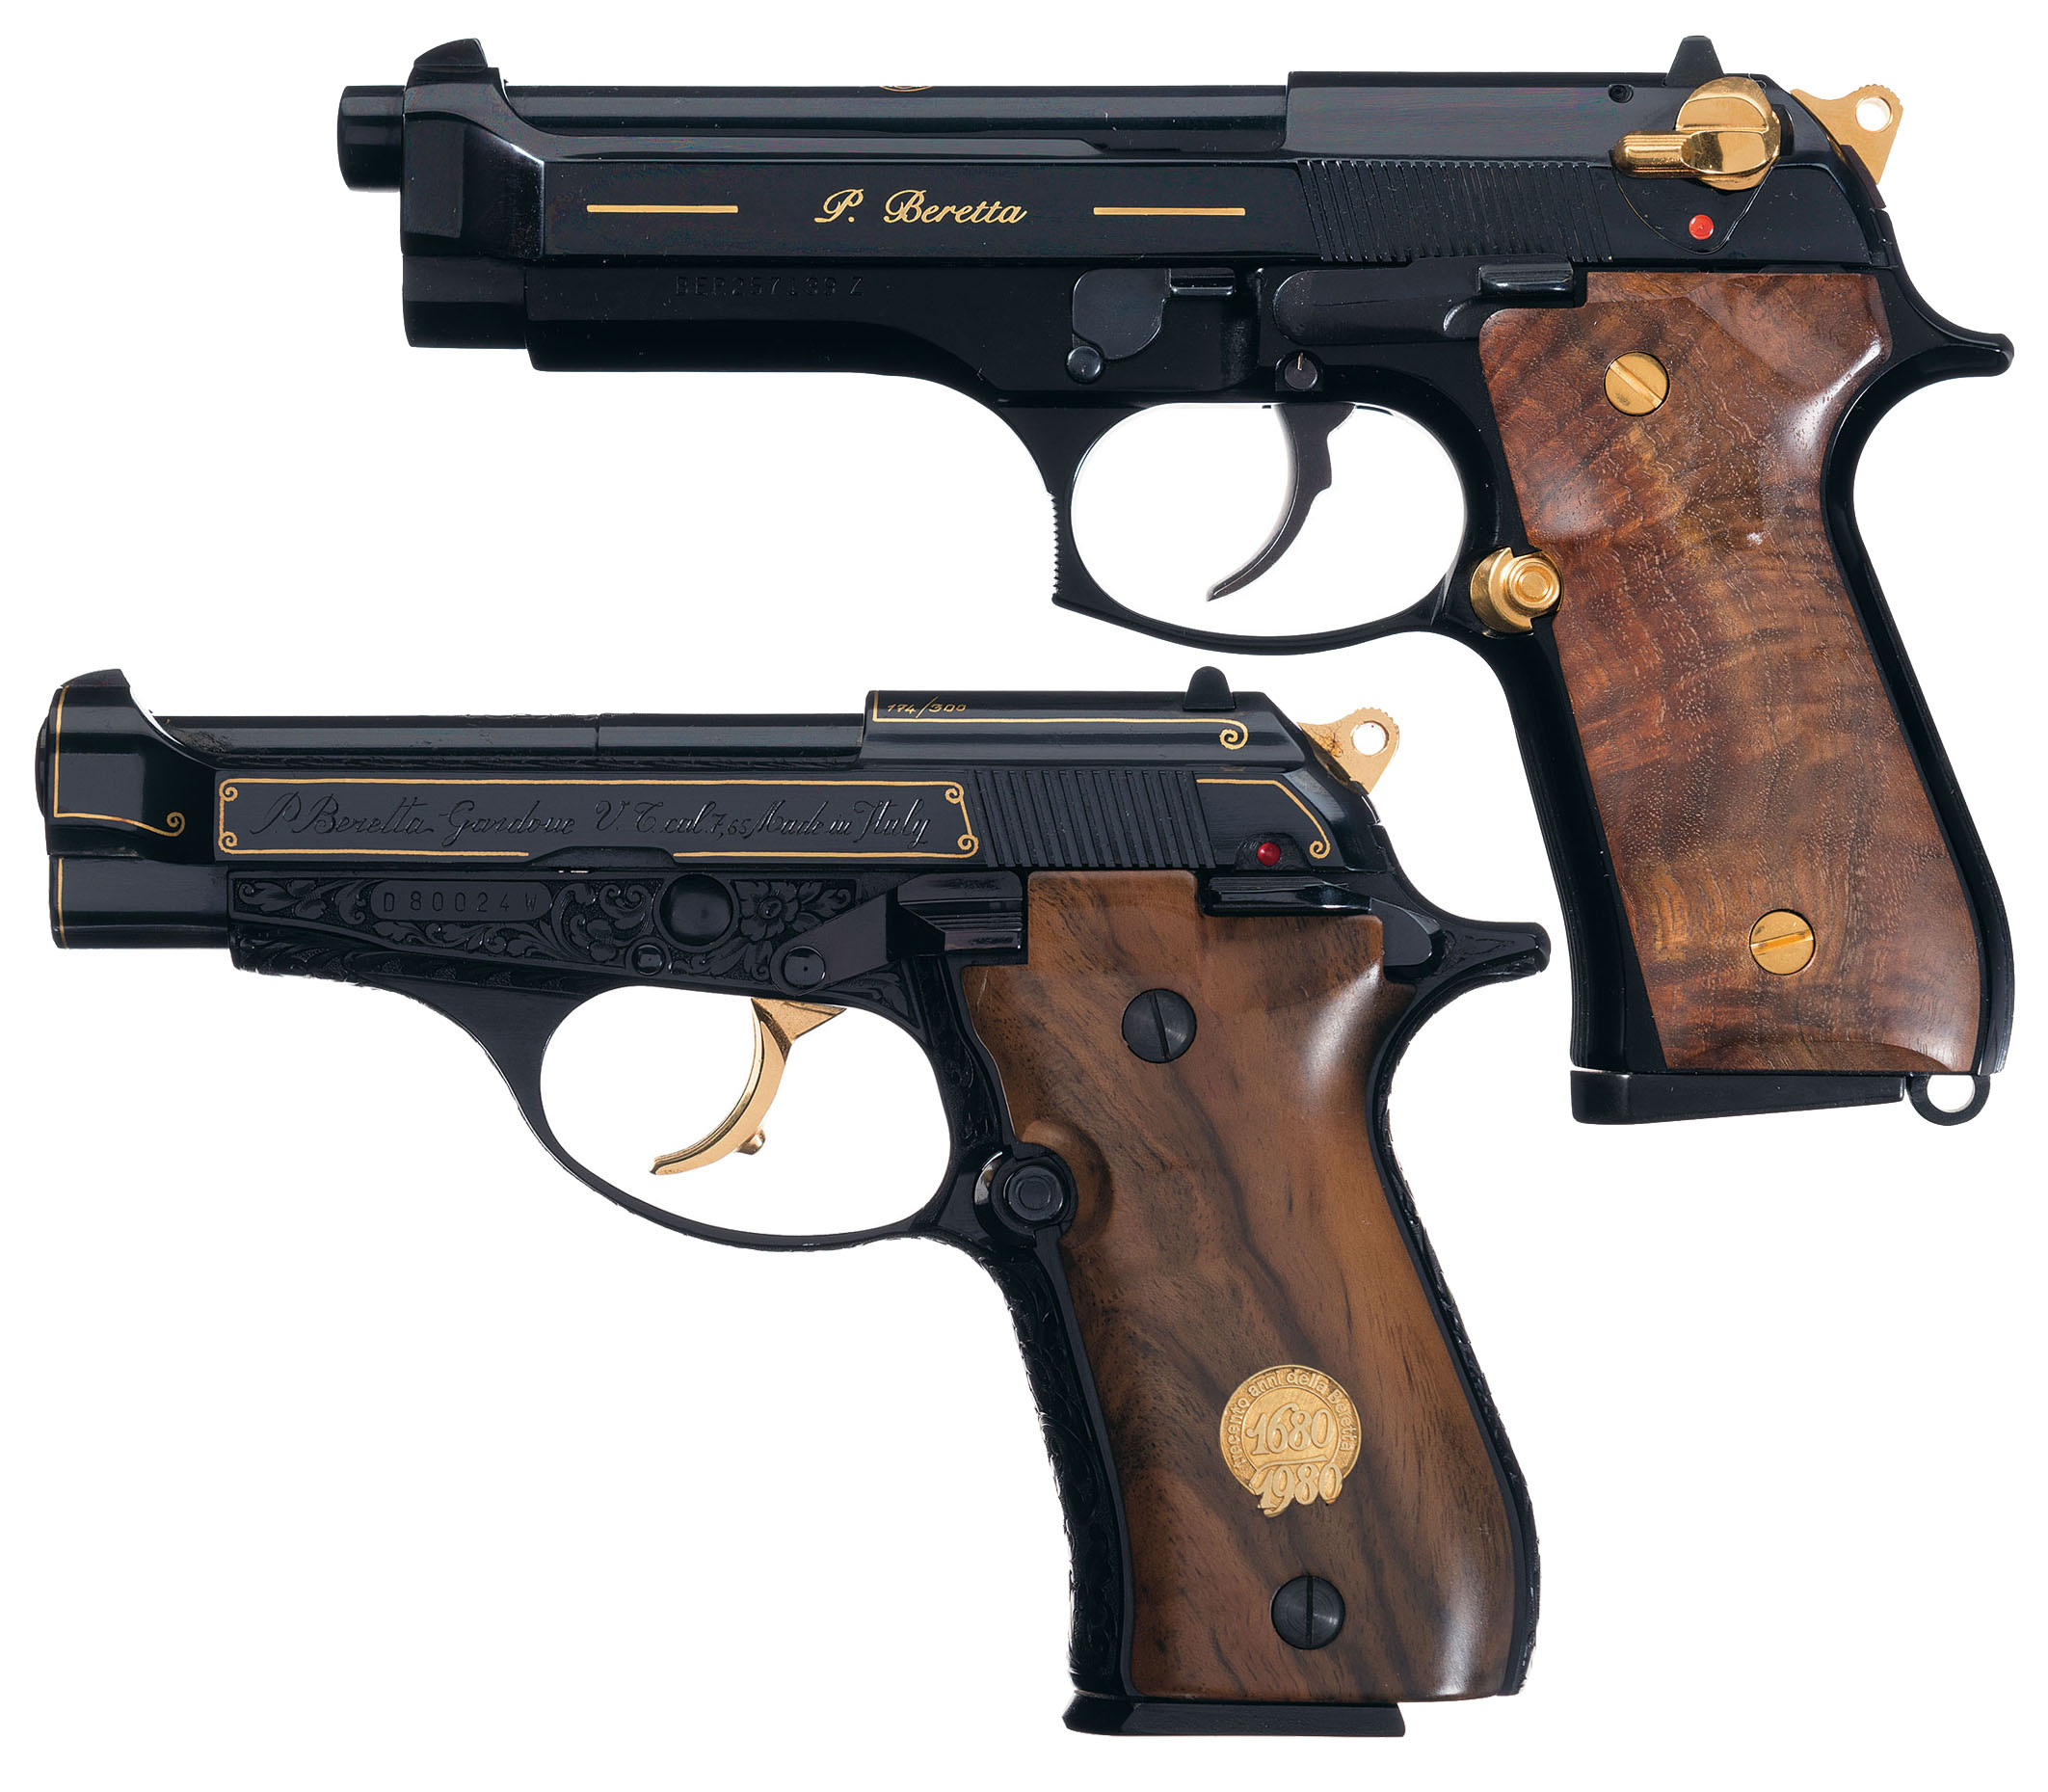 Two Gold Highlighted Beretta Semi-Automatic Pistols with Cases